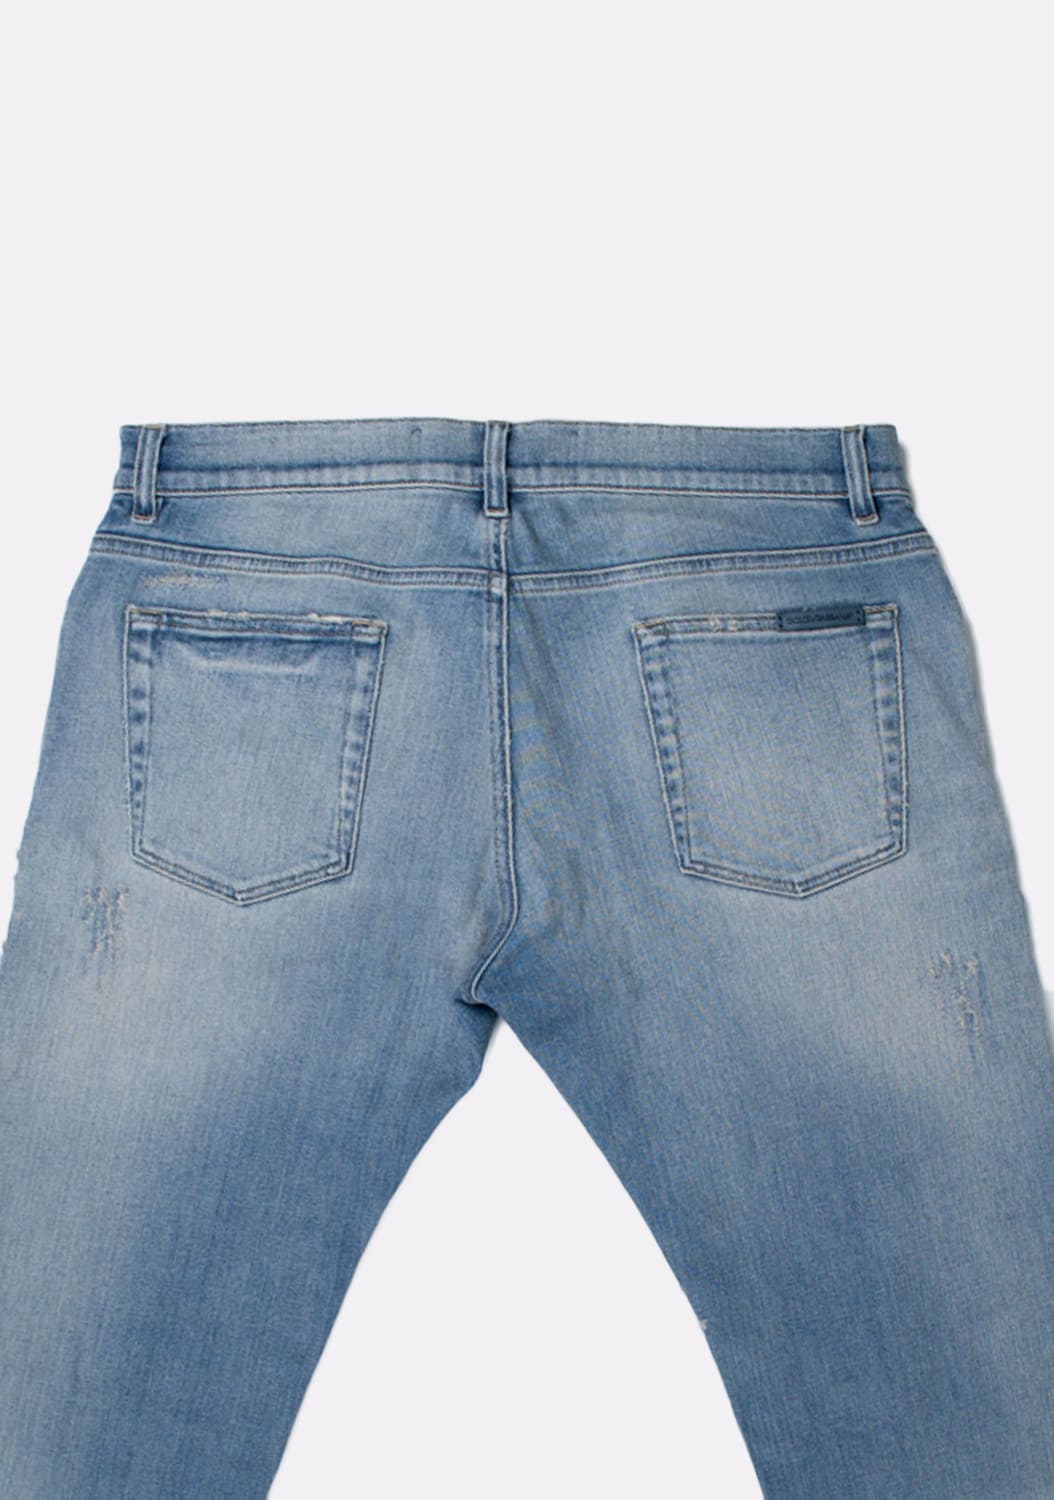 Dolce&Gabbana-Main-Line-14-Stretch-Distressed-Men-Jeans-Size-52-ITA (6)